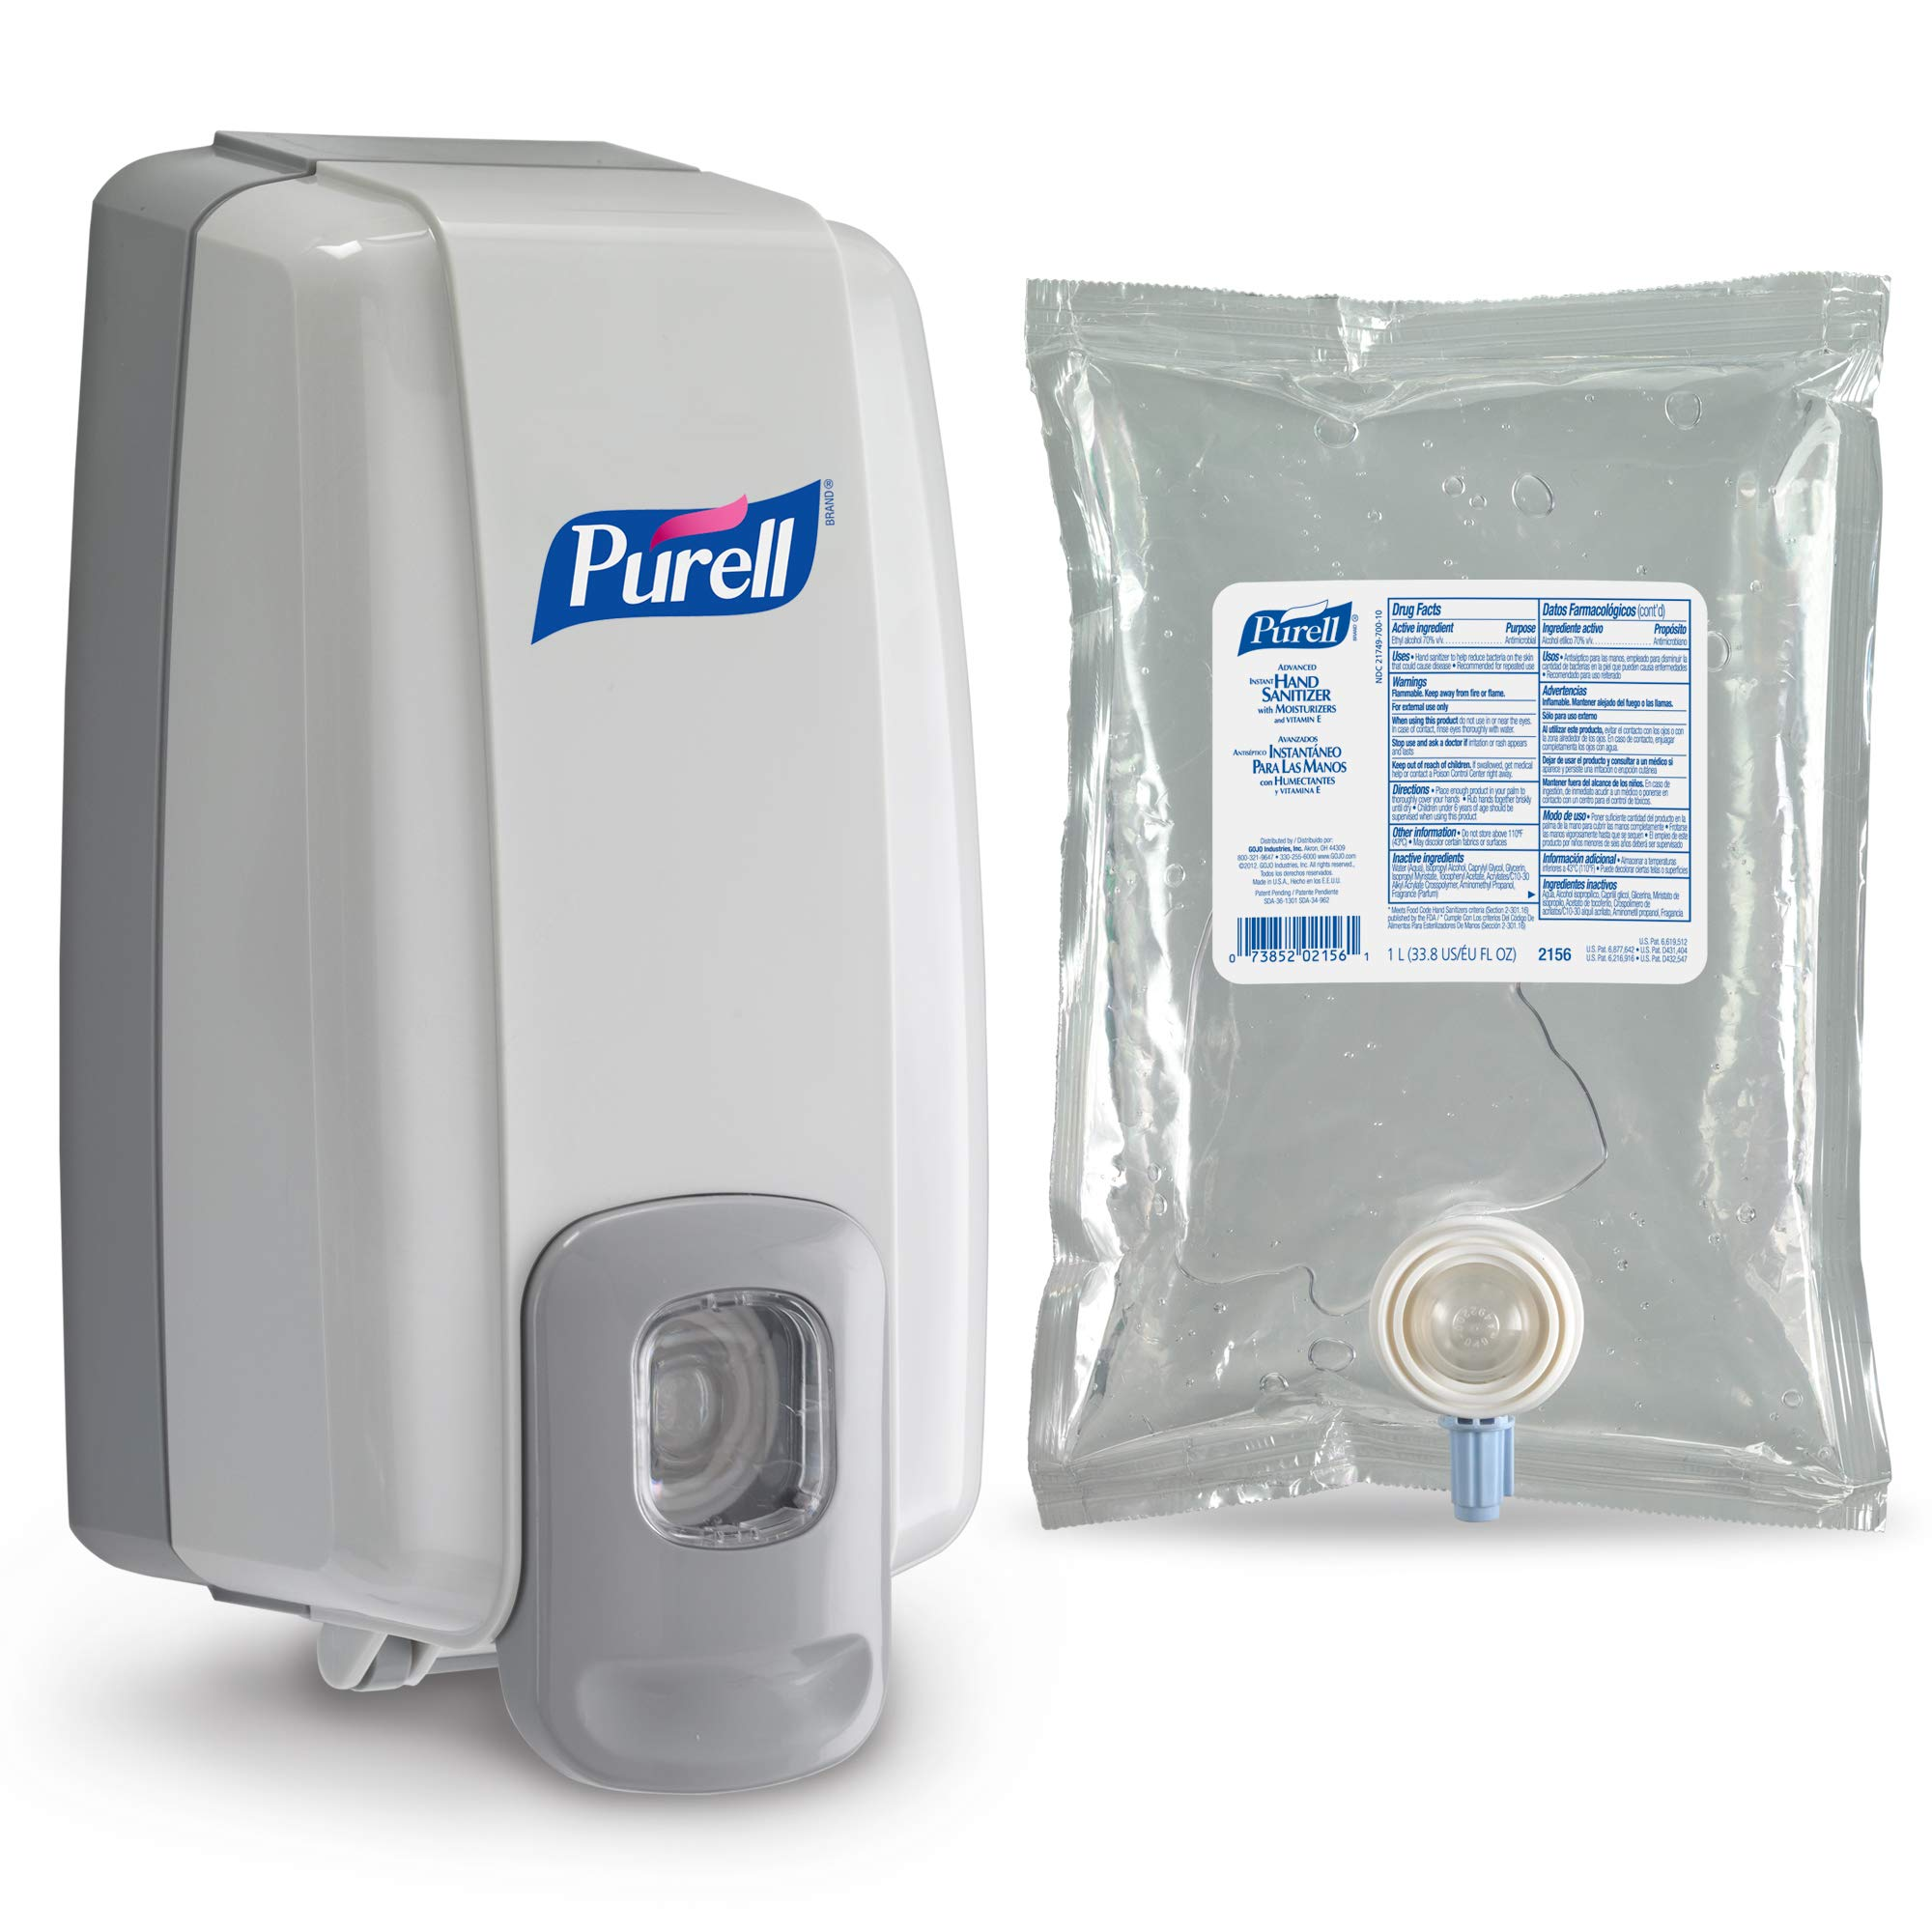 퓨렐 NXT 푸쉬 디스펜서, 리필용 손세정제 세트 구성 PURELL Advanced Hand Sanitizer NXT Starter Kit, 1 - 1000 mL Gel Hand Sanitizer Refill + 1 PURELL NXT SPACE SAVER Dove Grey Push-Style Dispenser – 2156-D1